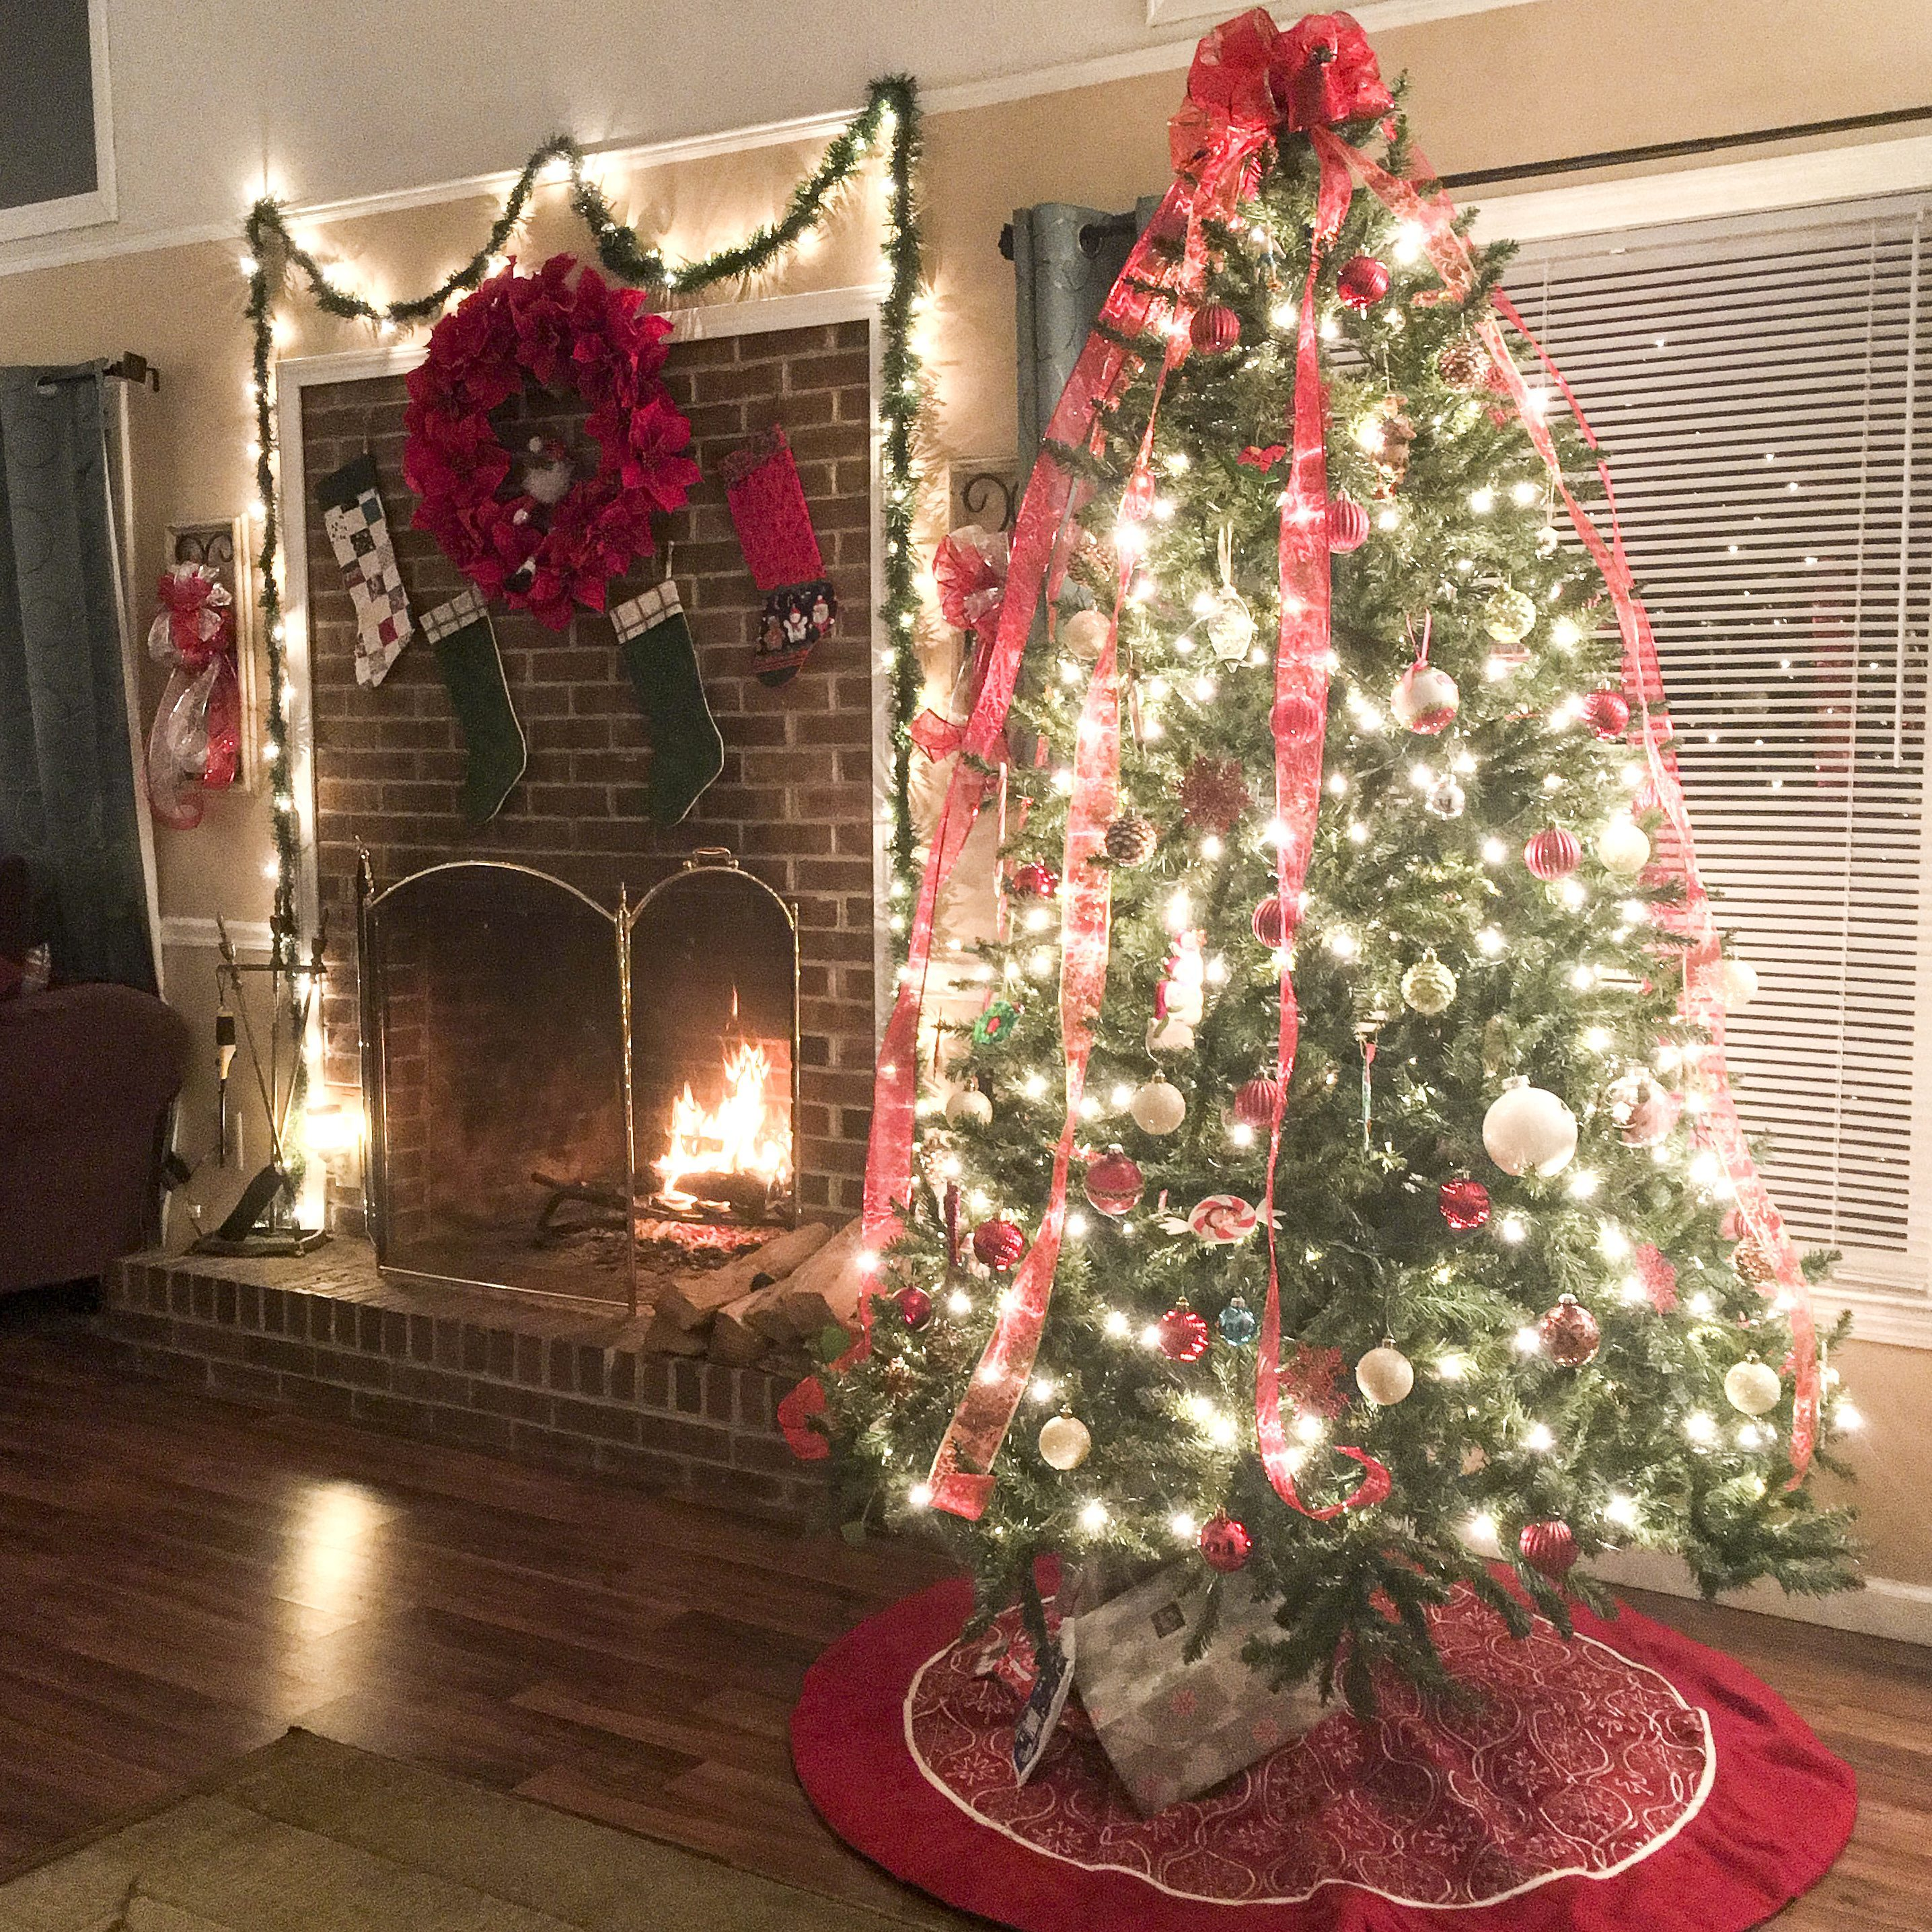 Free picture: Christmas, decoration, celebration, interior, holiday